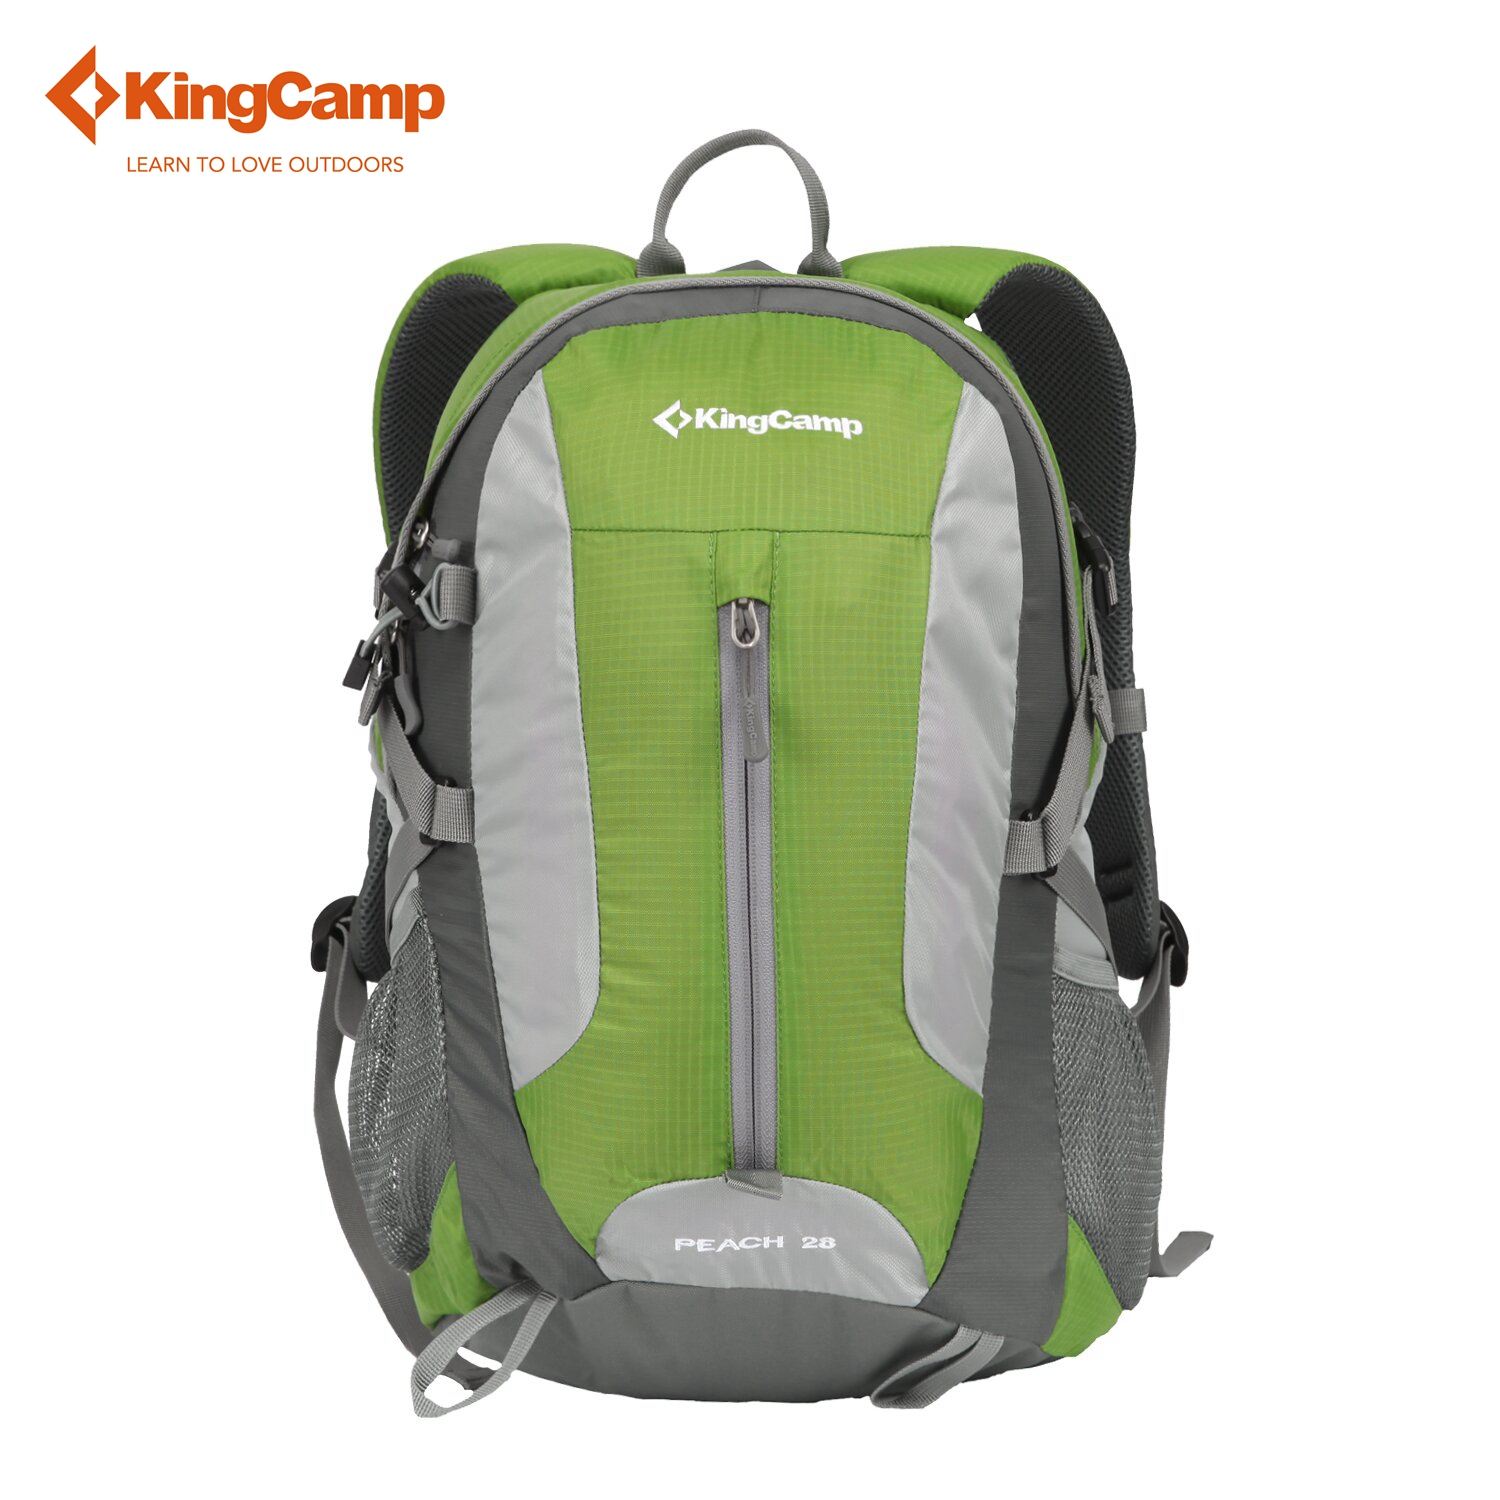 KingCamp 28L Travel Backpack With Rain Cover Lightweight Multi-function Waterproof Anti-Tear Day Pack for Outdoor Hiking Camping